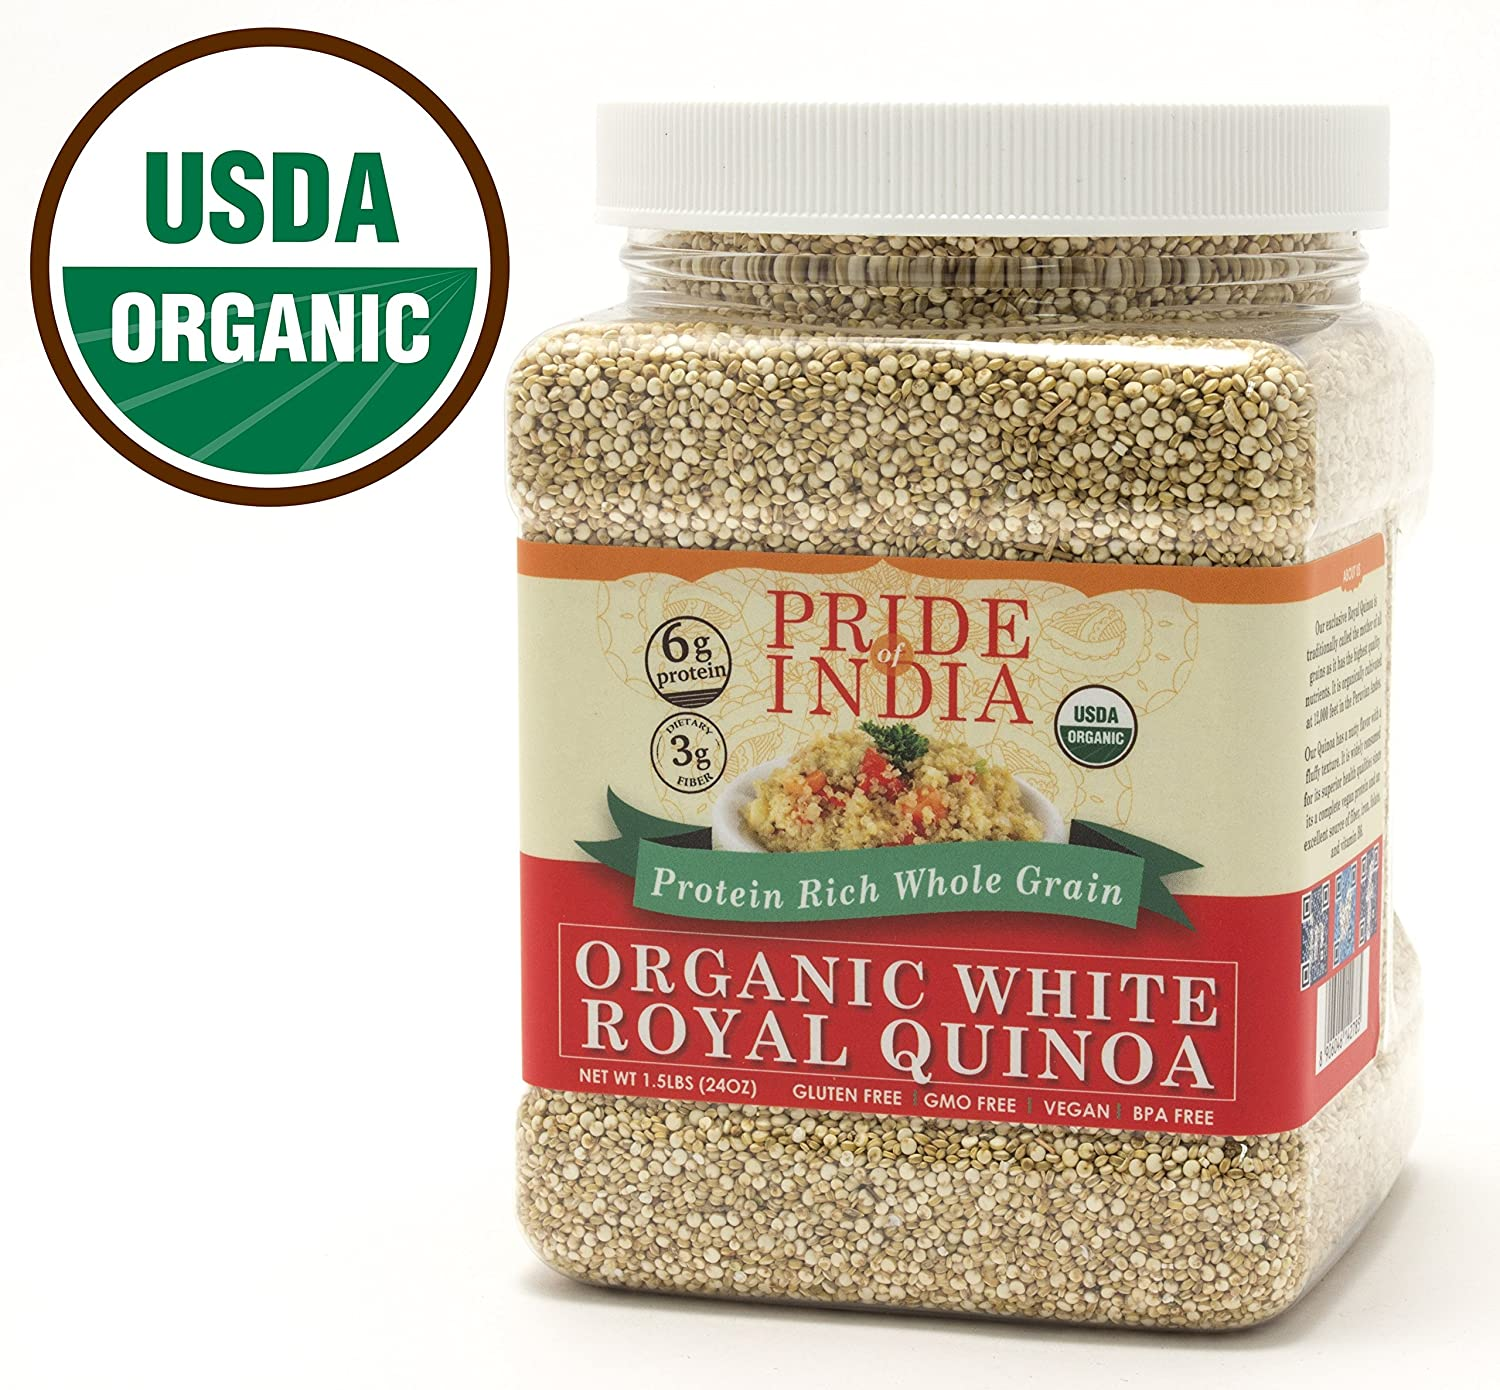 Pride Of India - Organic White Royal Quinoa - 100% Bolivian Superior Grade Protein Rich Whole Grain, 1.5 Pound Jar